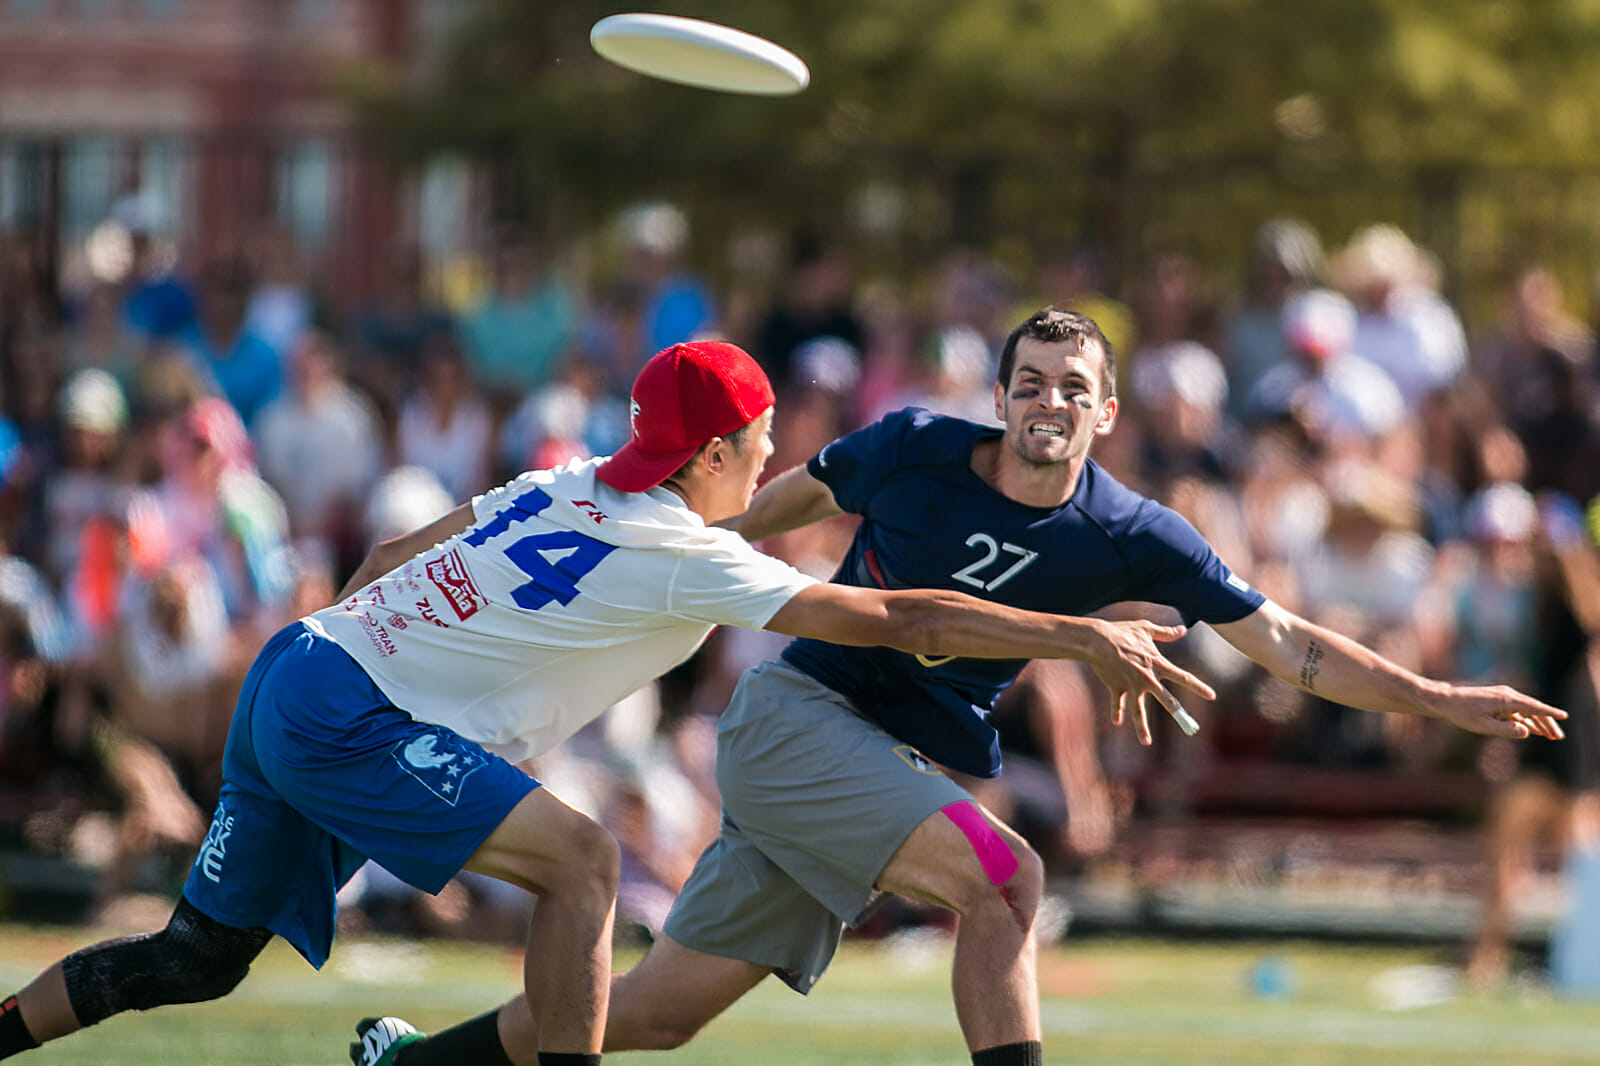 Revolver's Ashlin Joye bombs a backhand. Photo: Daniel Thai -- UltiPhotos.com